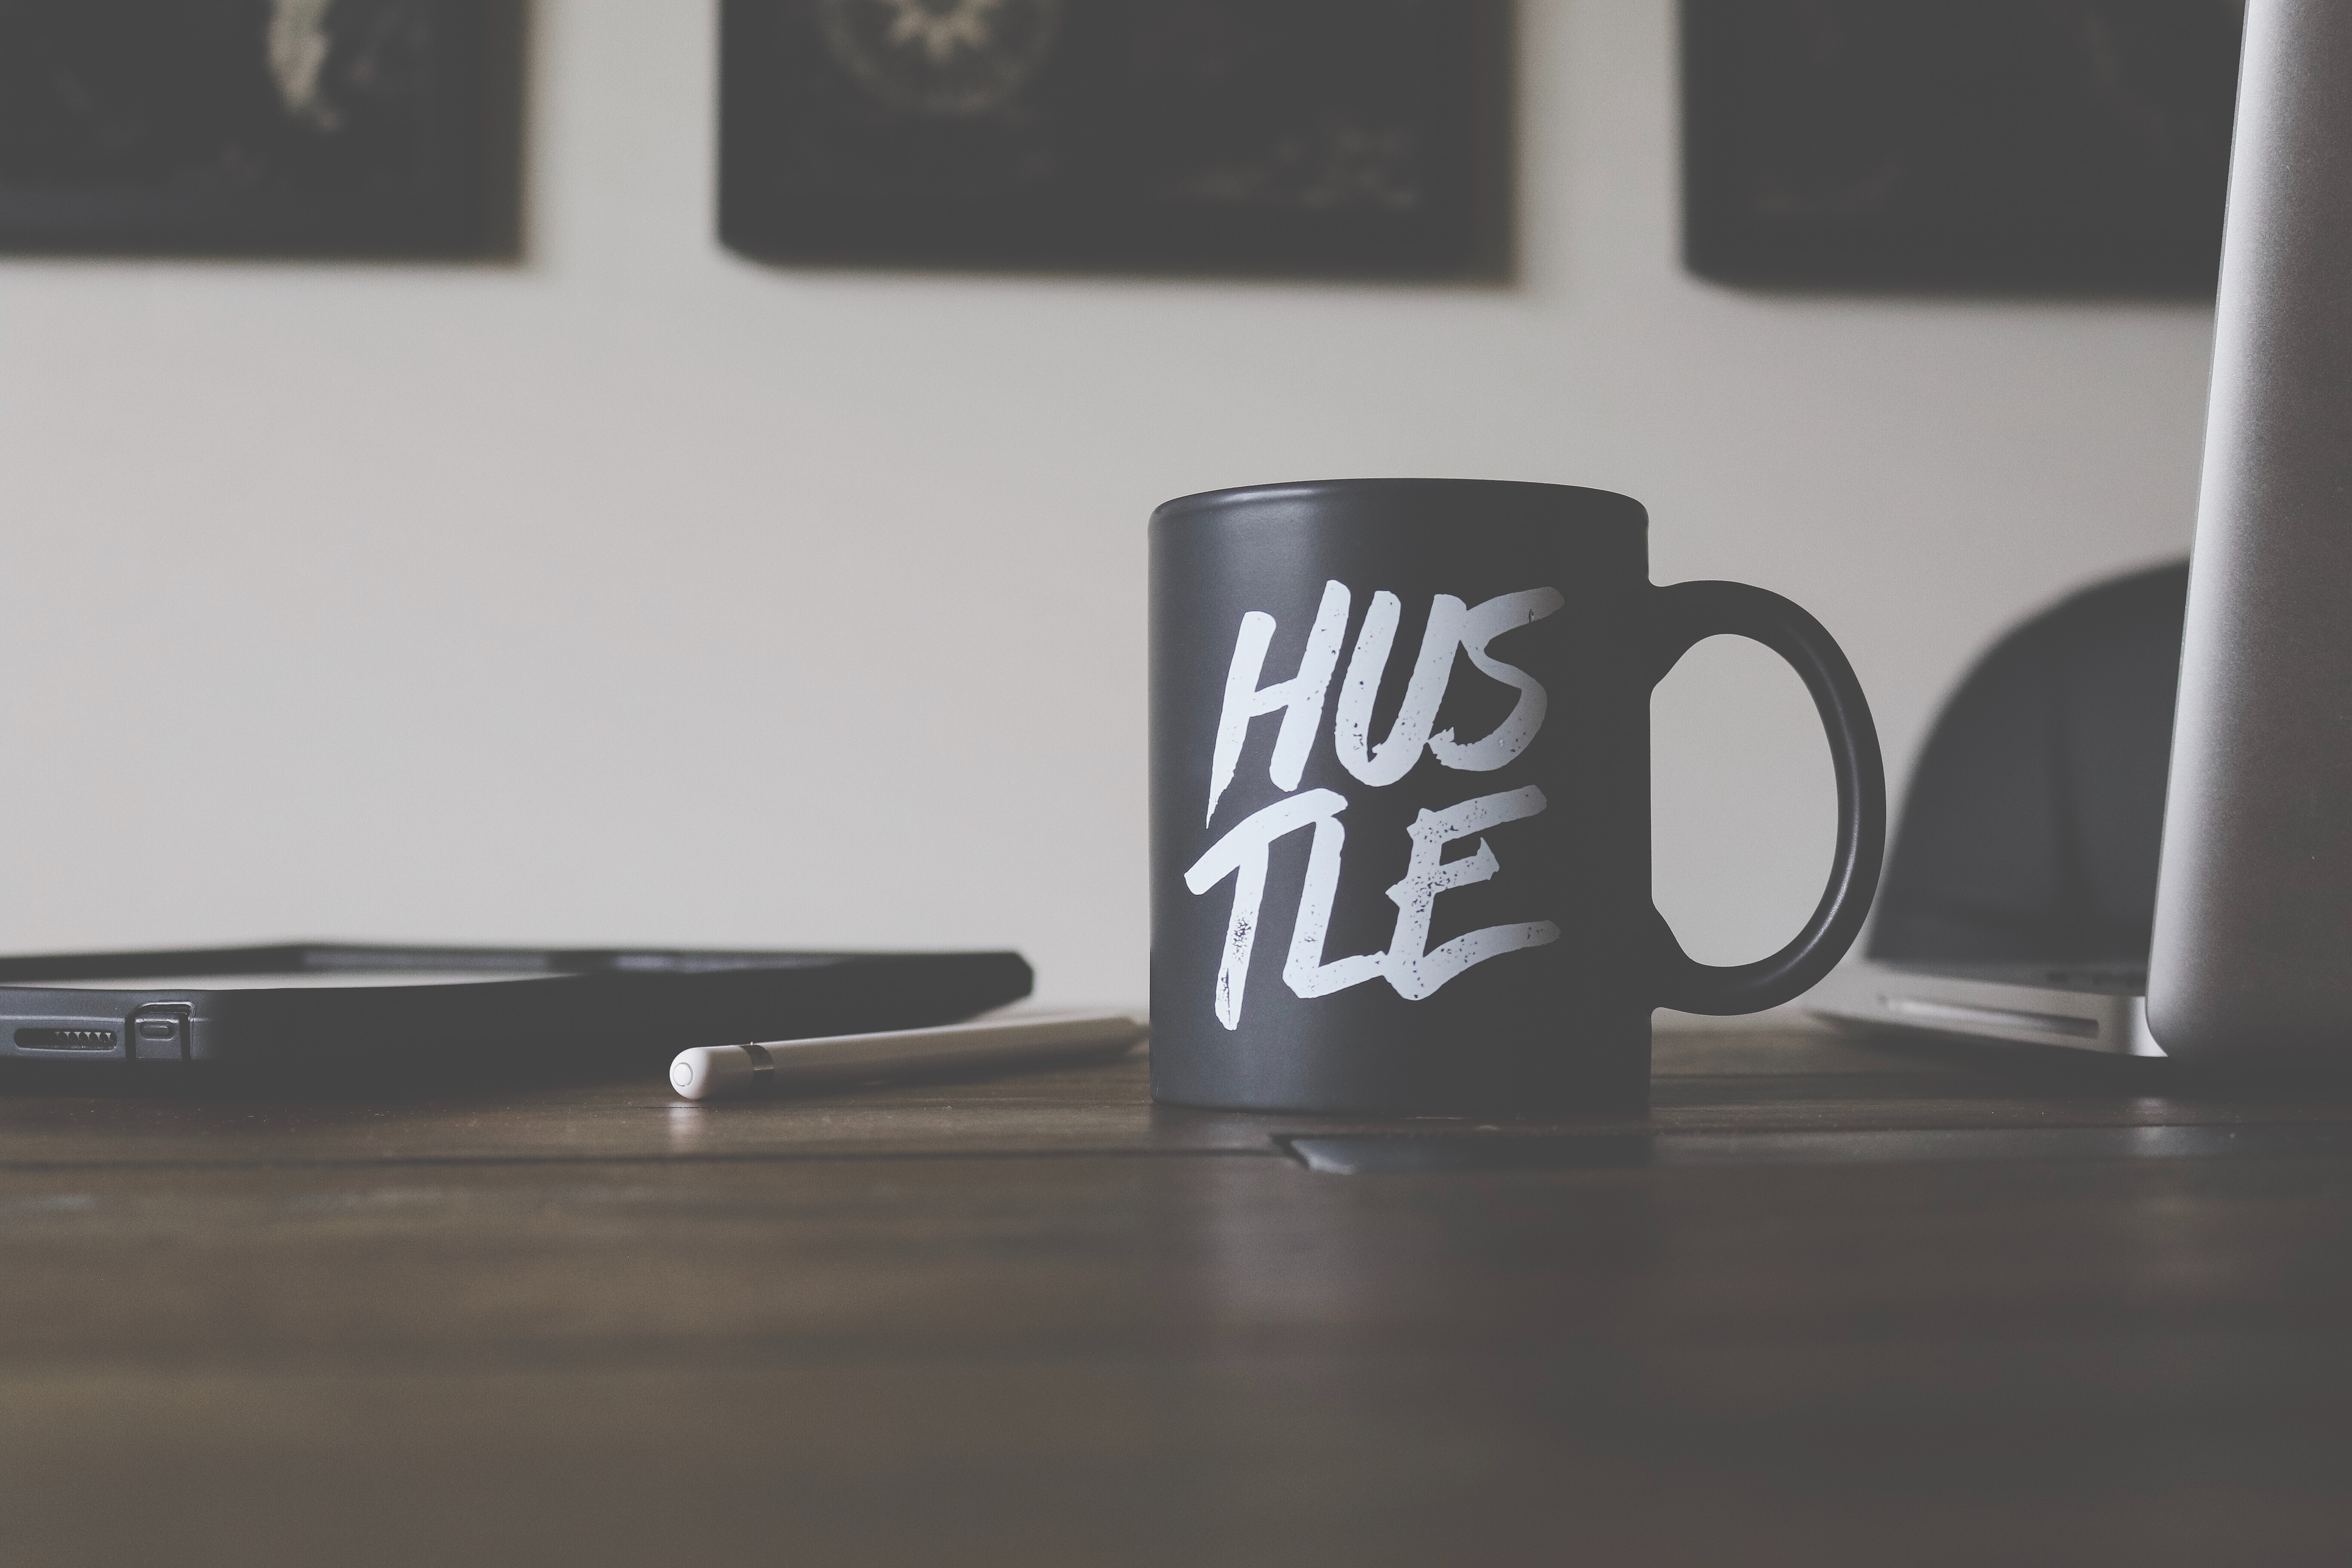 Hustle Cup